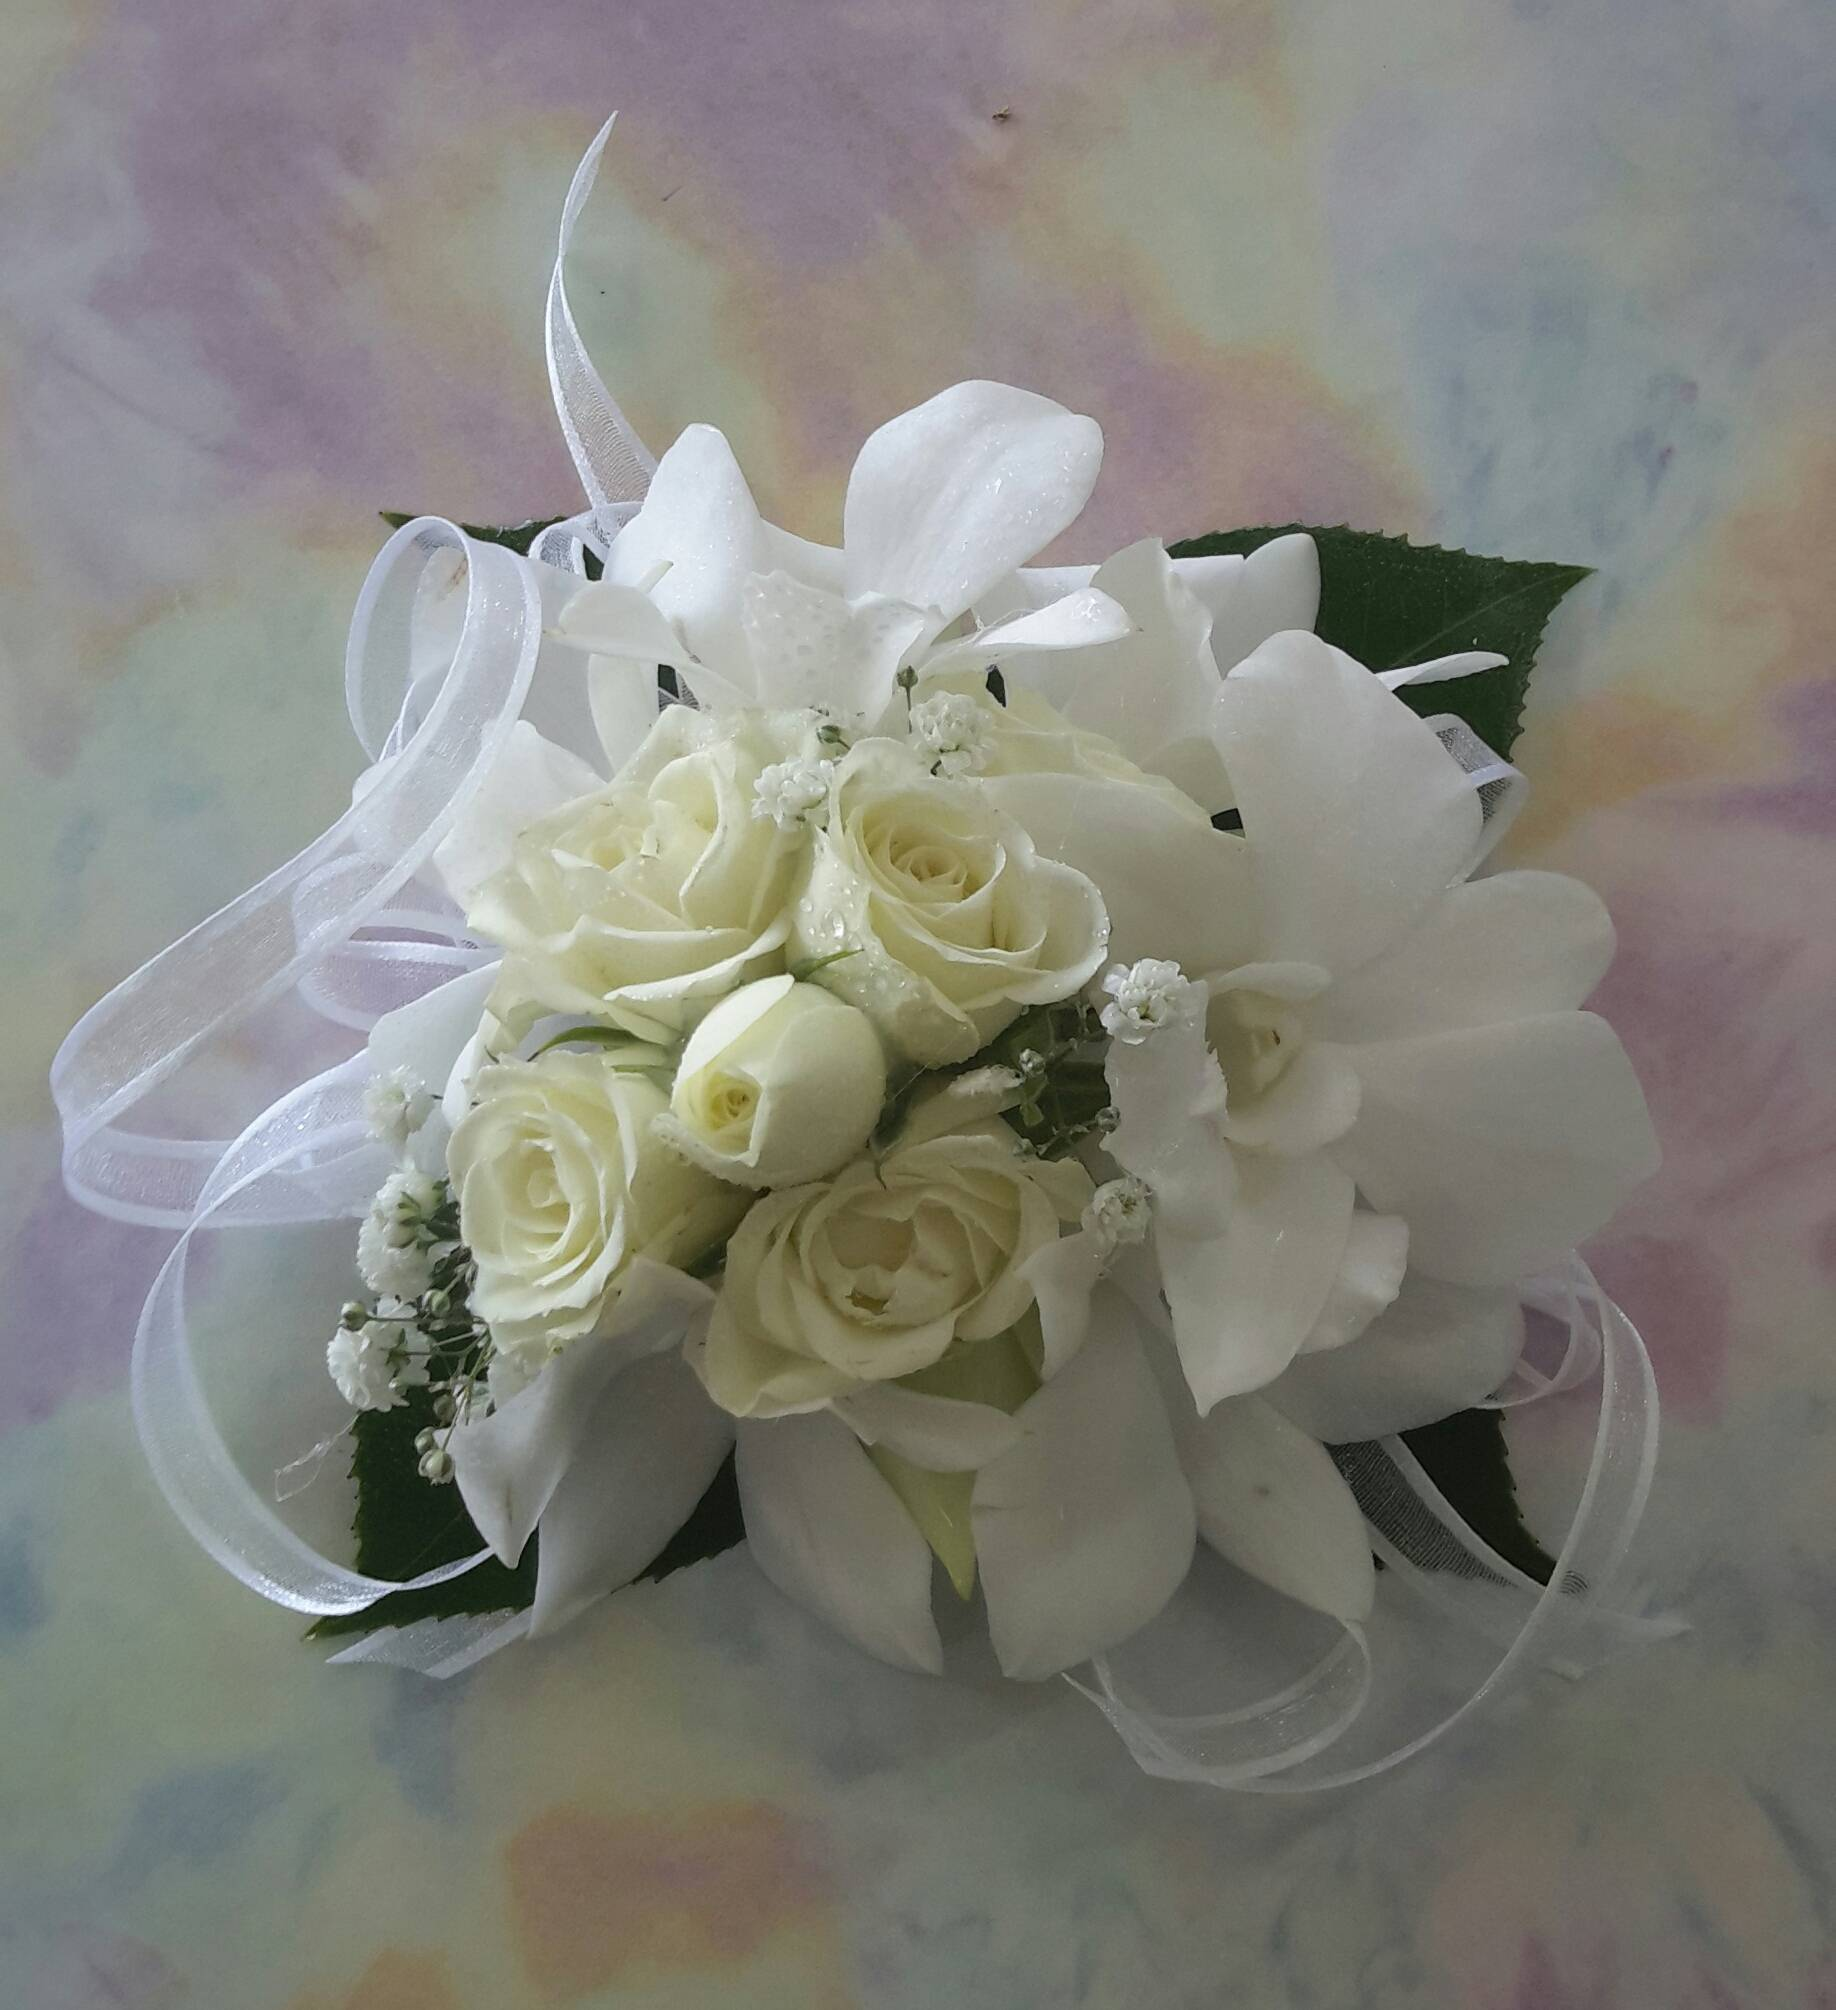 White Roses and White Orchids